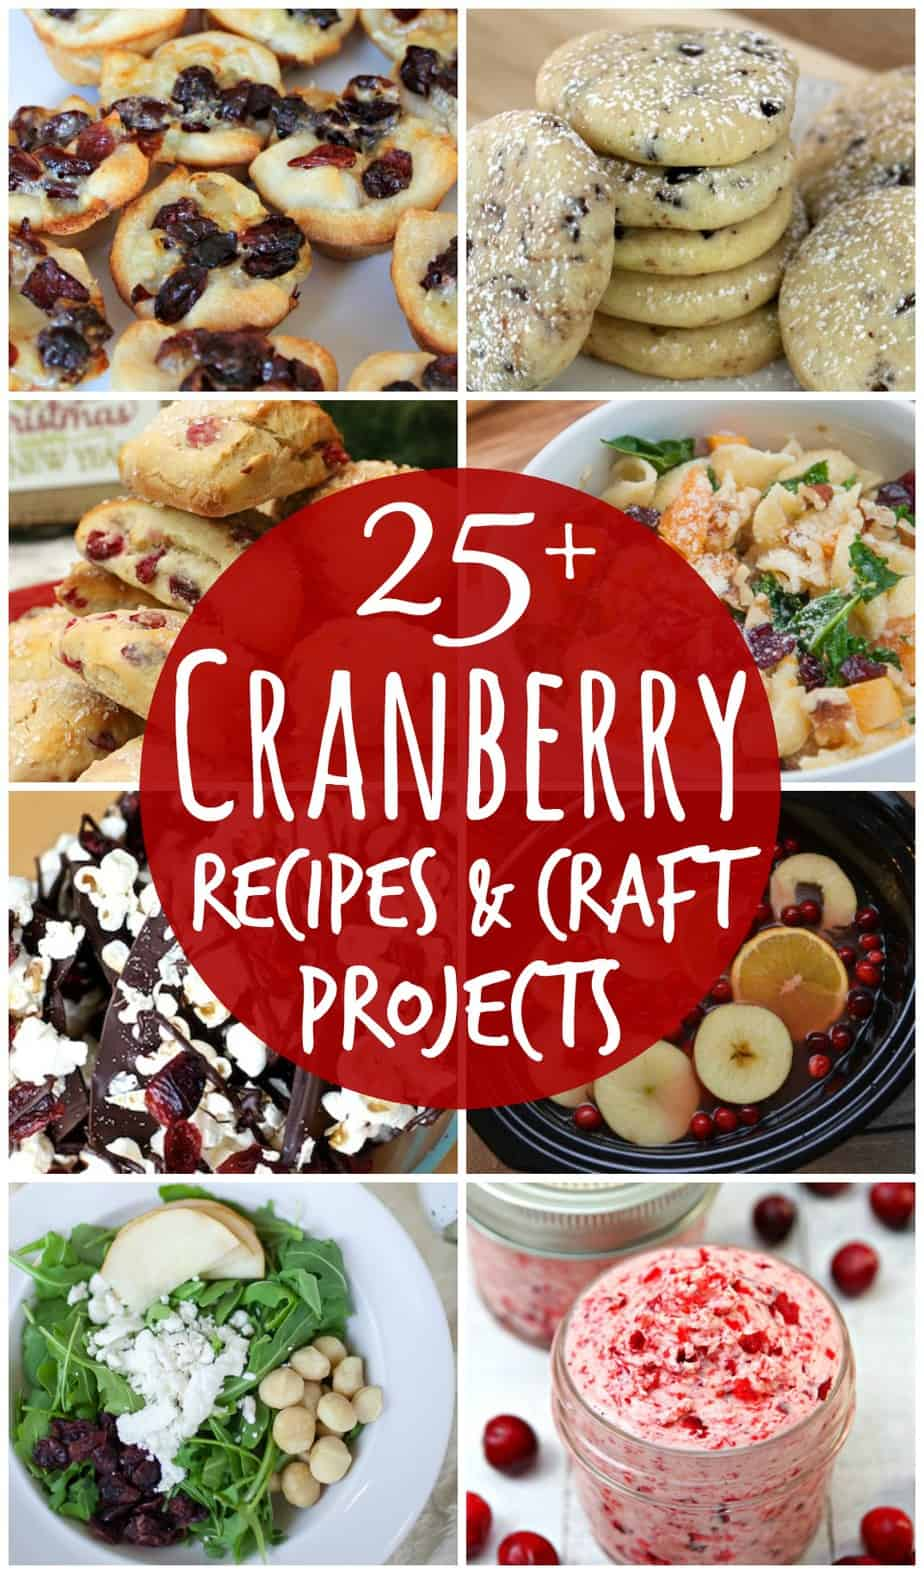 Cranberry Recipes and Craft Projects